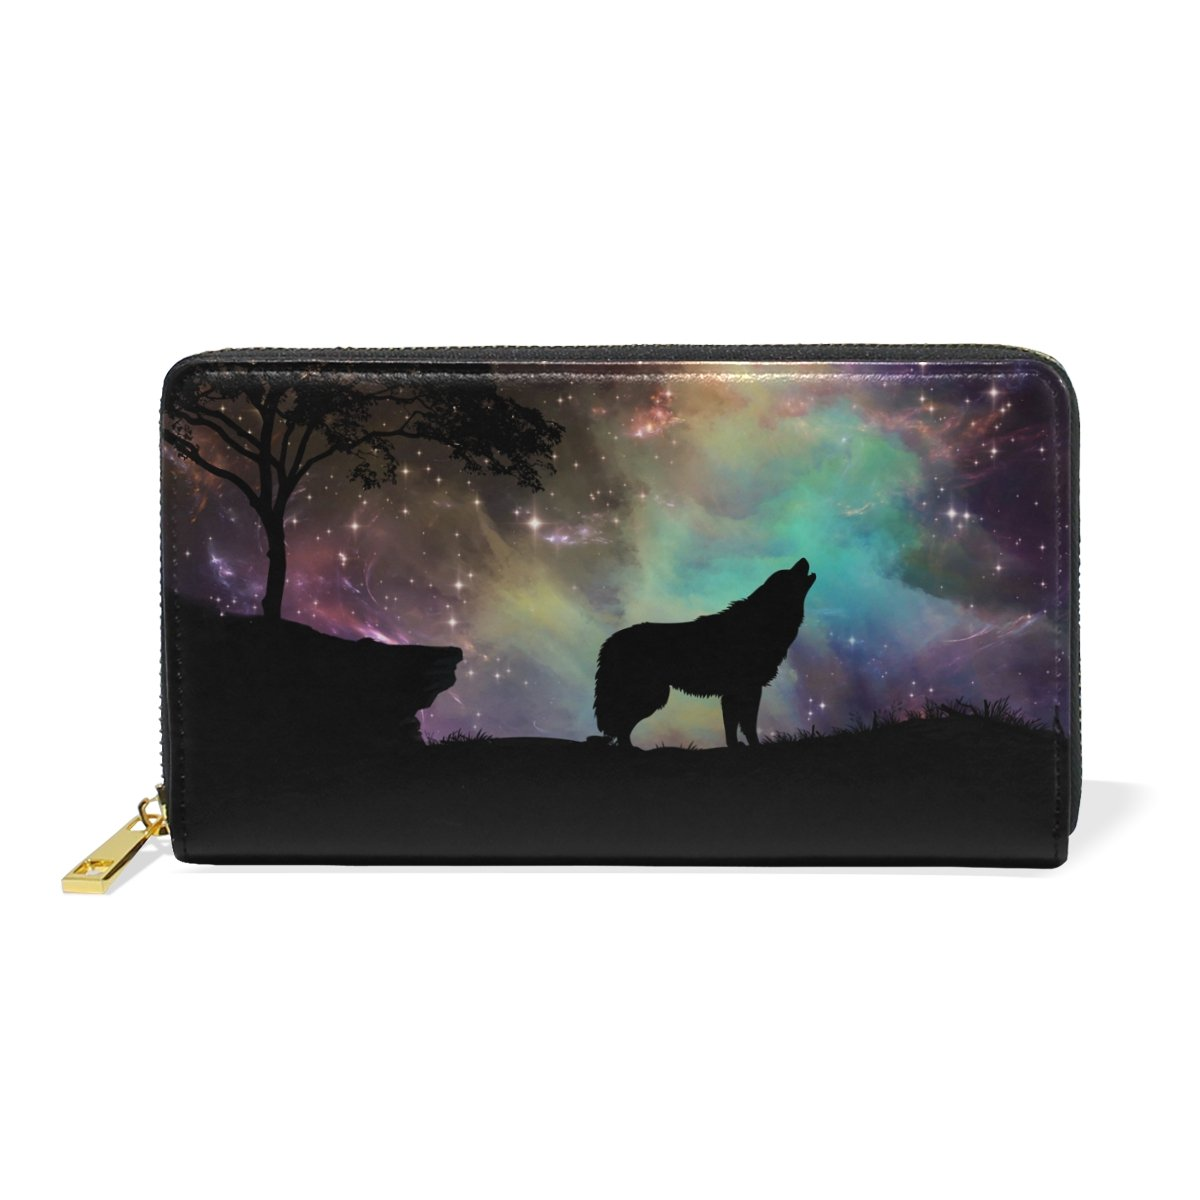 Galaxy Wolf Genuine Leather Girl Zipper Wallets Clutch Coin Phone for Women by FeiHuang (Image #2)